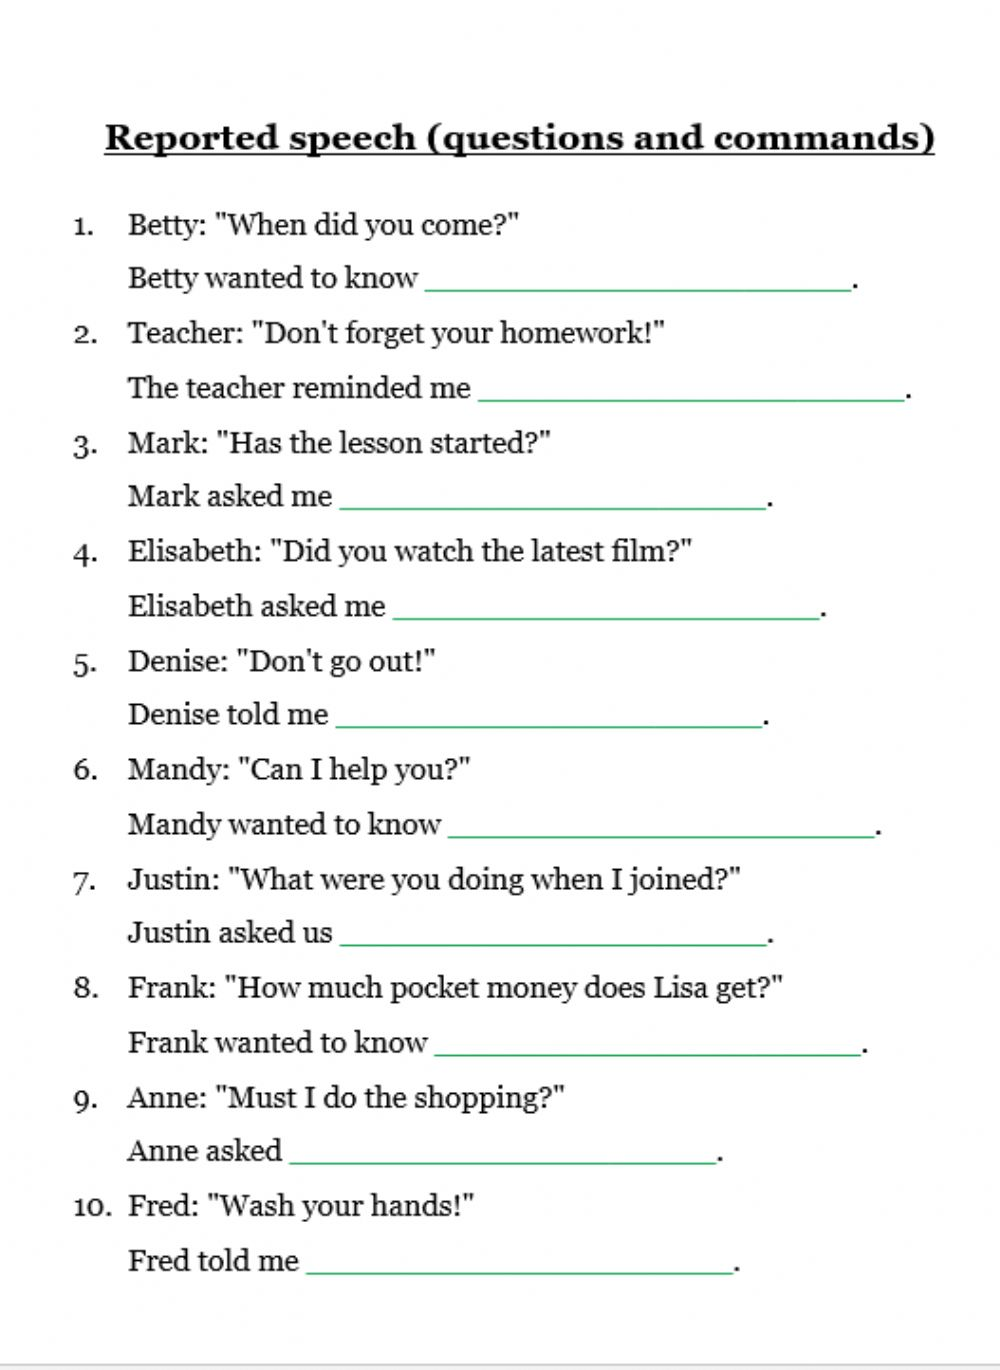 Reported Speech Questions And Commands Worksheet